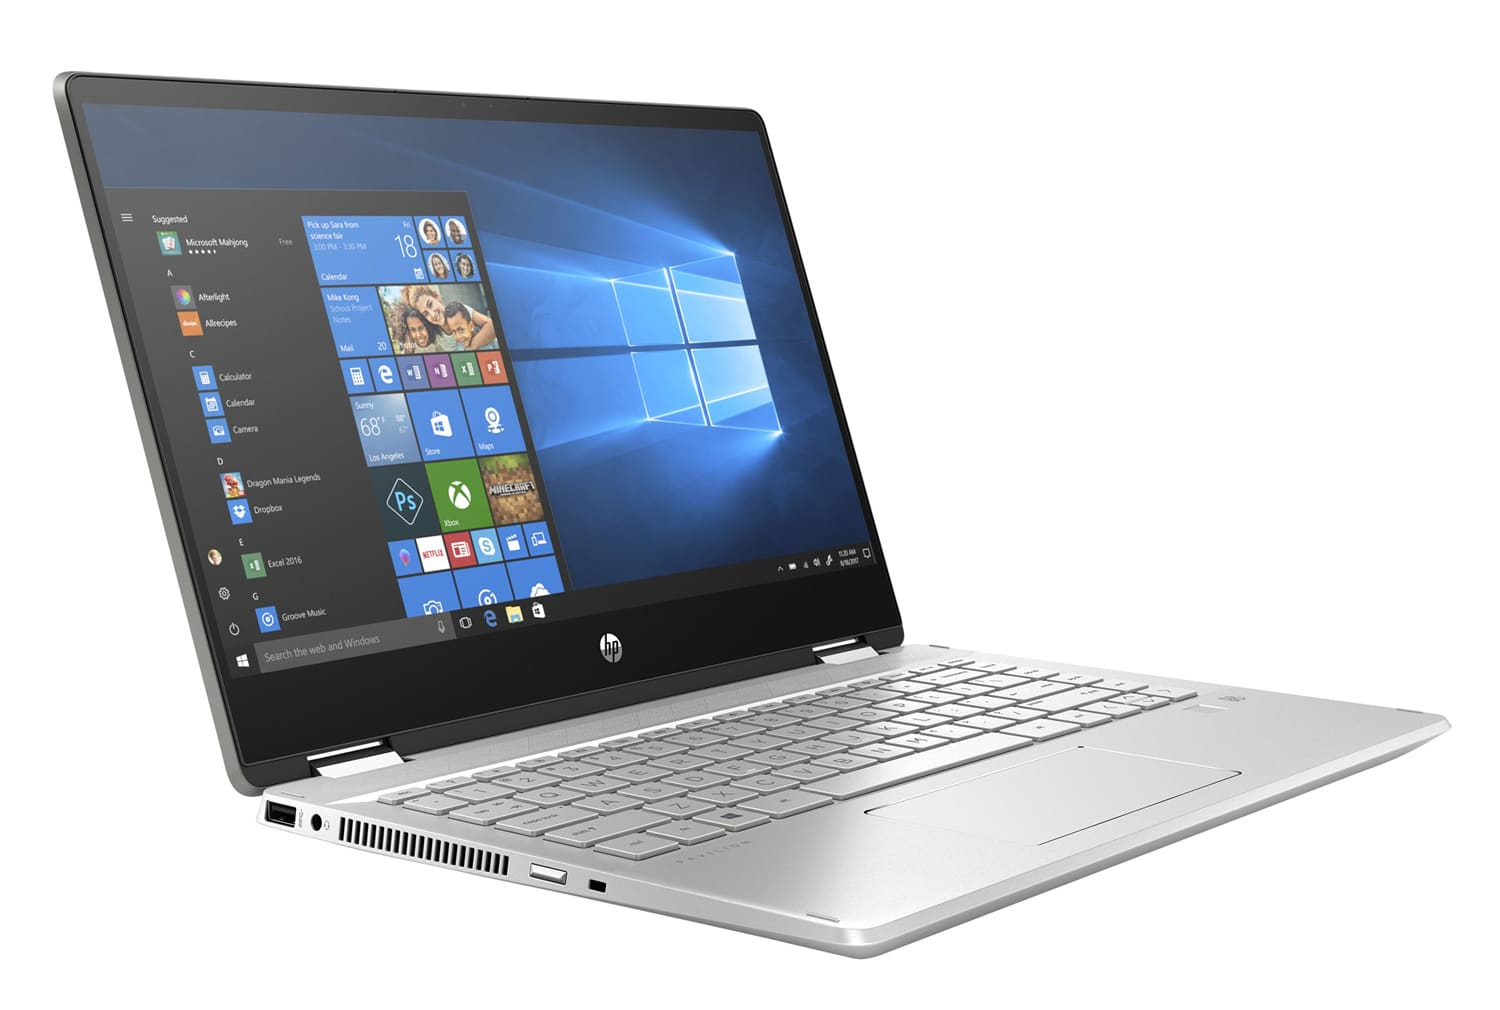 "Soldes HP x360 14-dh0008nf, Ultrabook 14"" Tablette polyvalent (685€)"